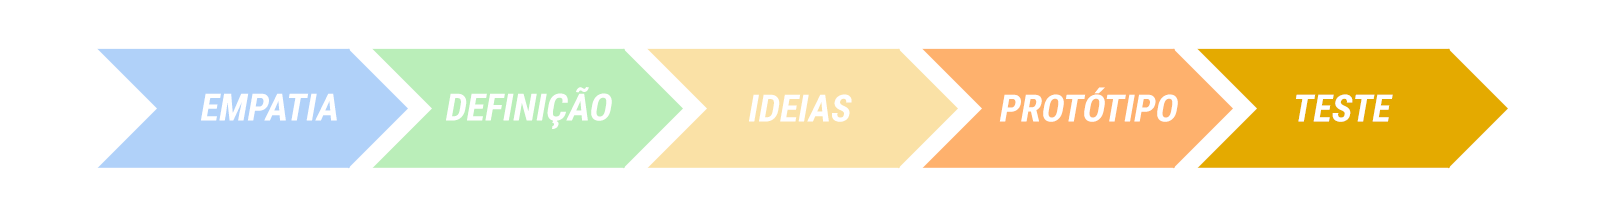 Fases design thinking